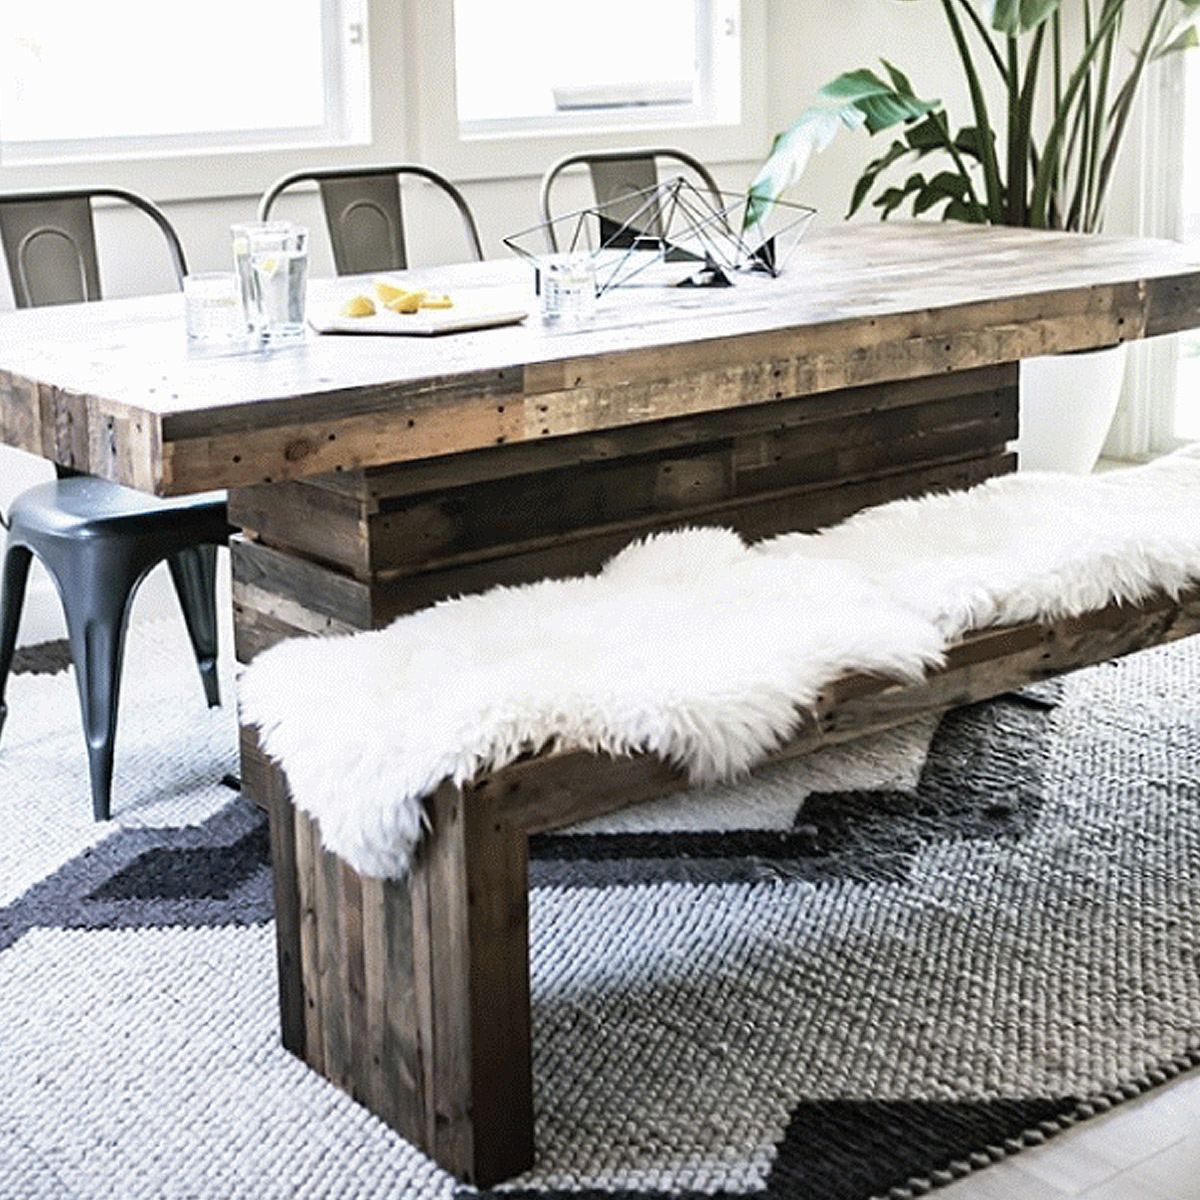 Bassett Furniture Neutral Sofa Family Room Accents Interiors Chandelier Lighting Pendants Four Hands Dining Table And Chairs